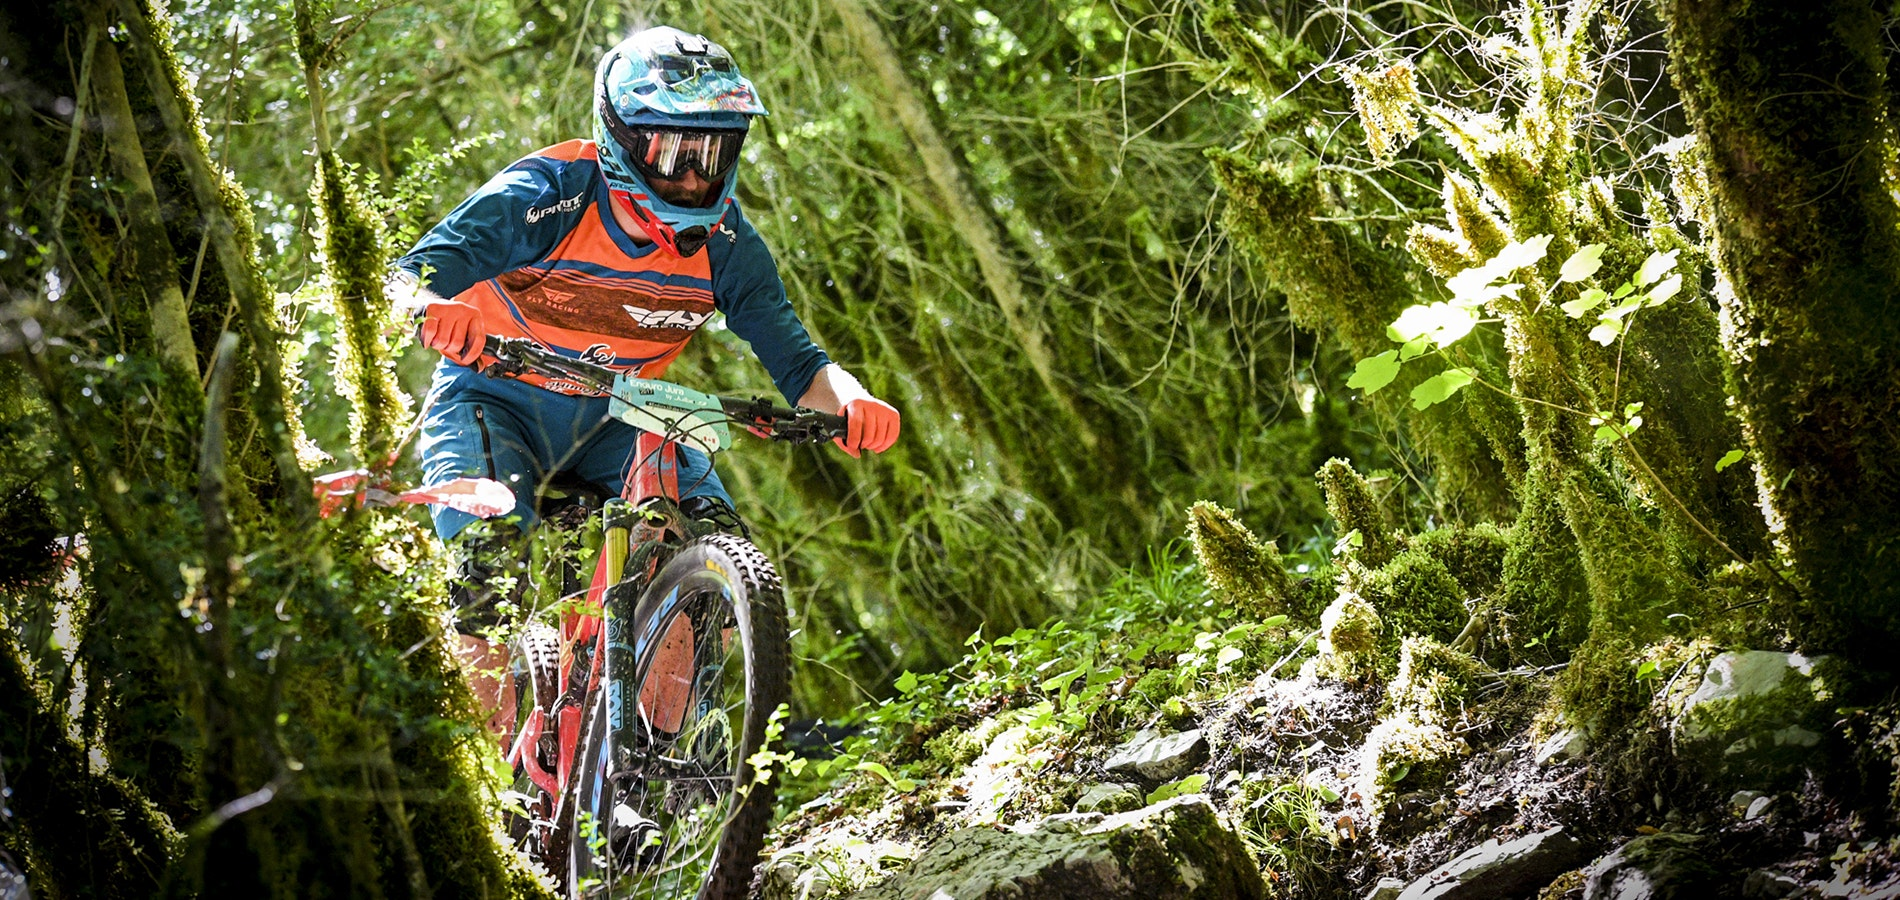 Enduro Jura by Julbo 2018 : discover the event through Antoine Caron's interview!